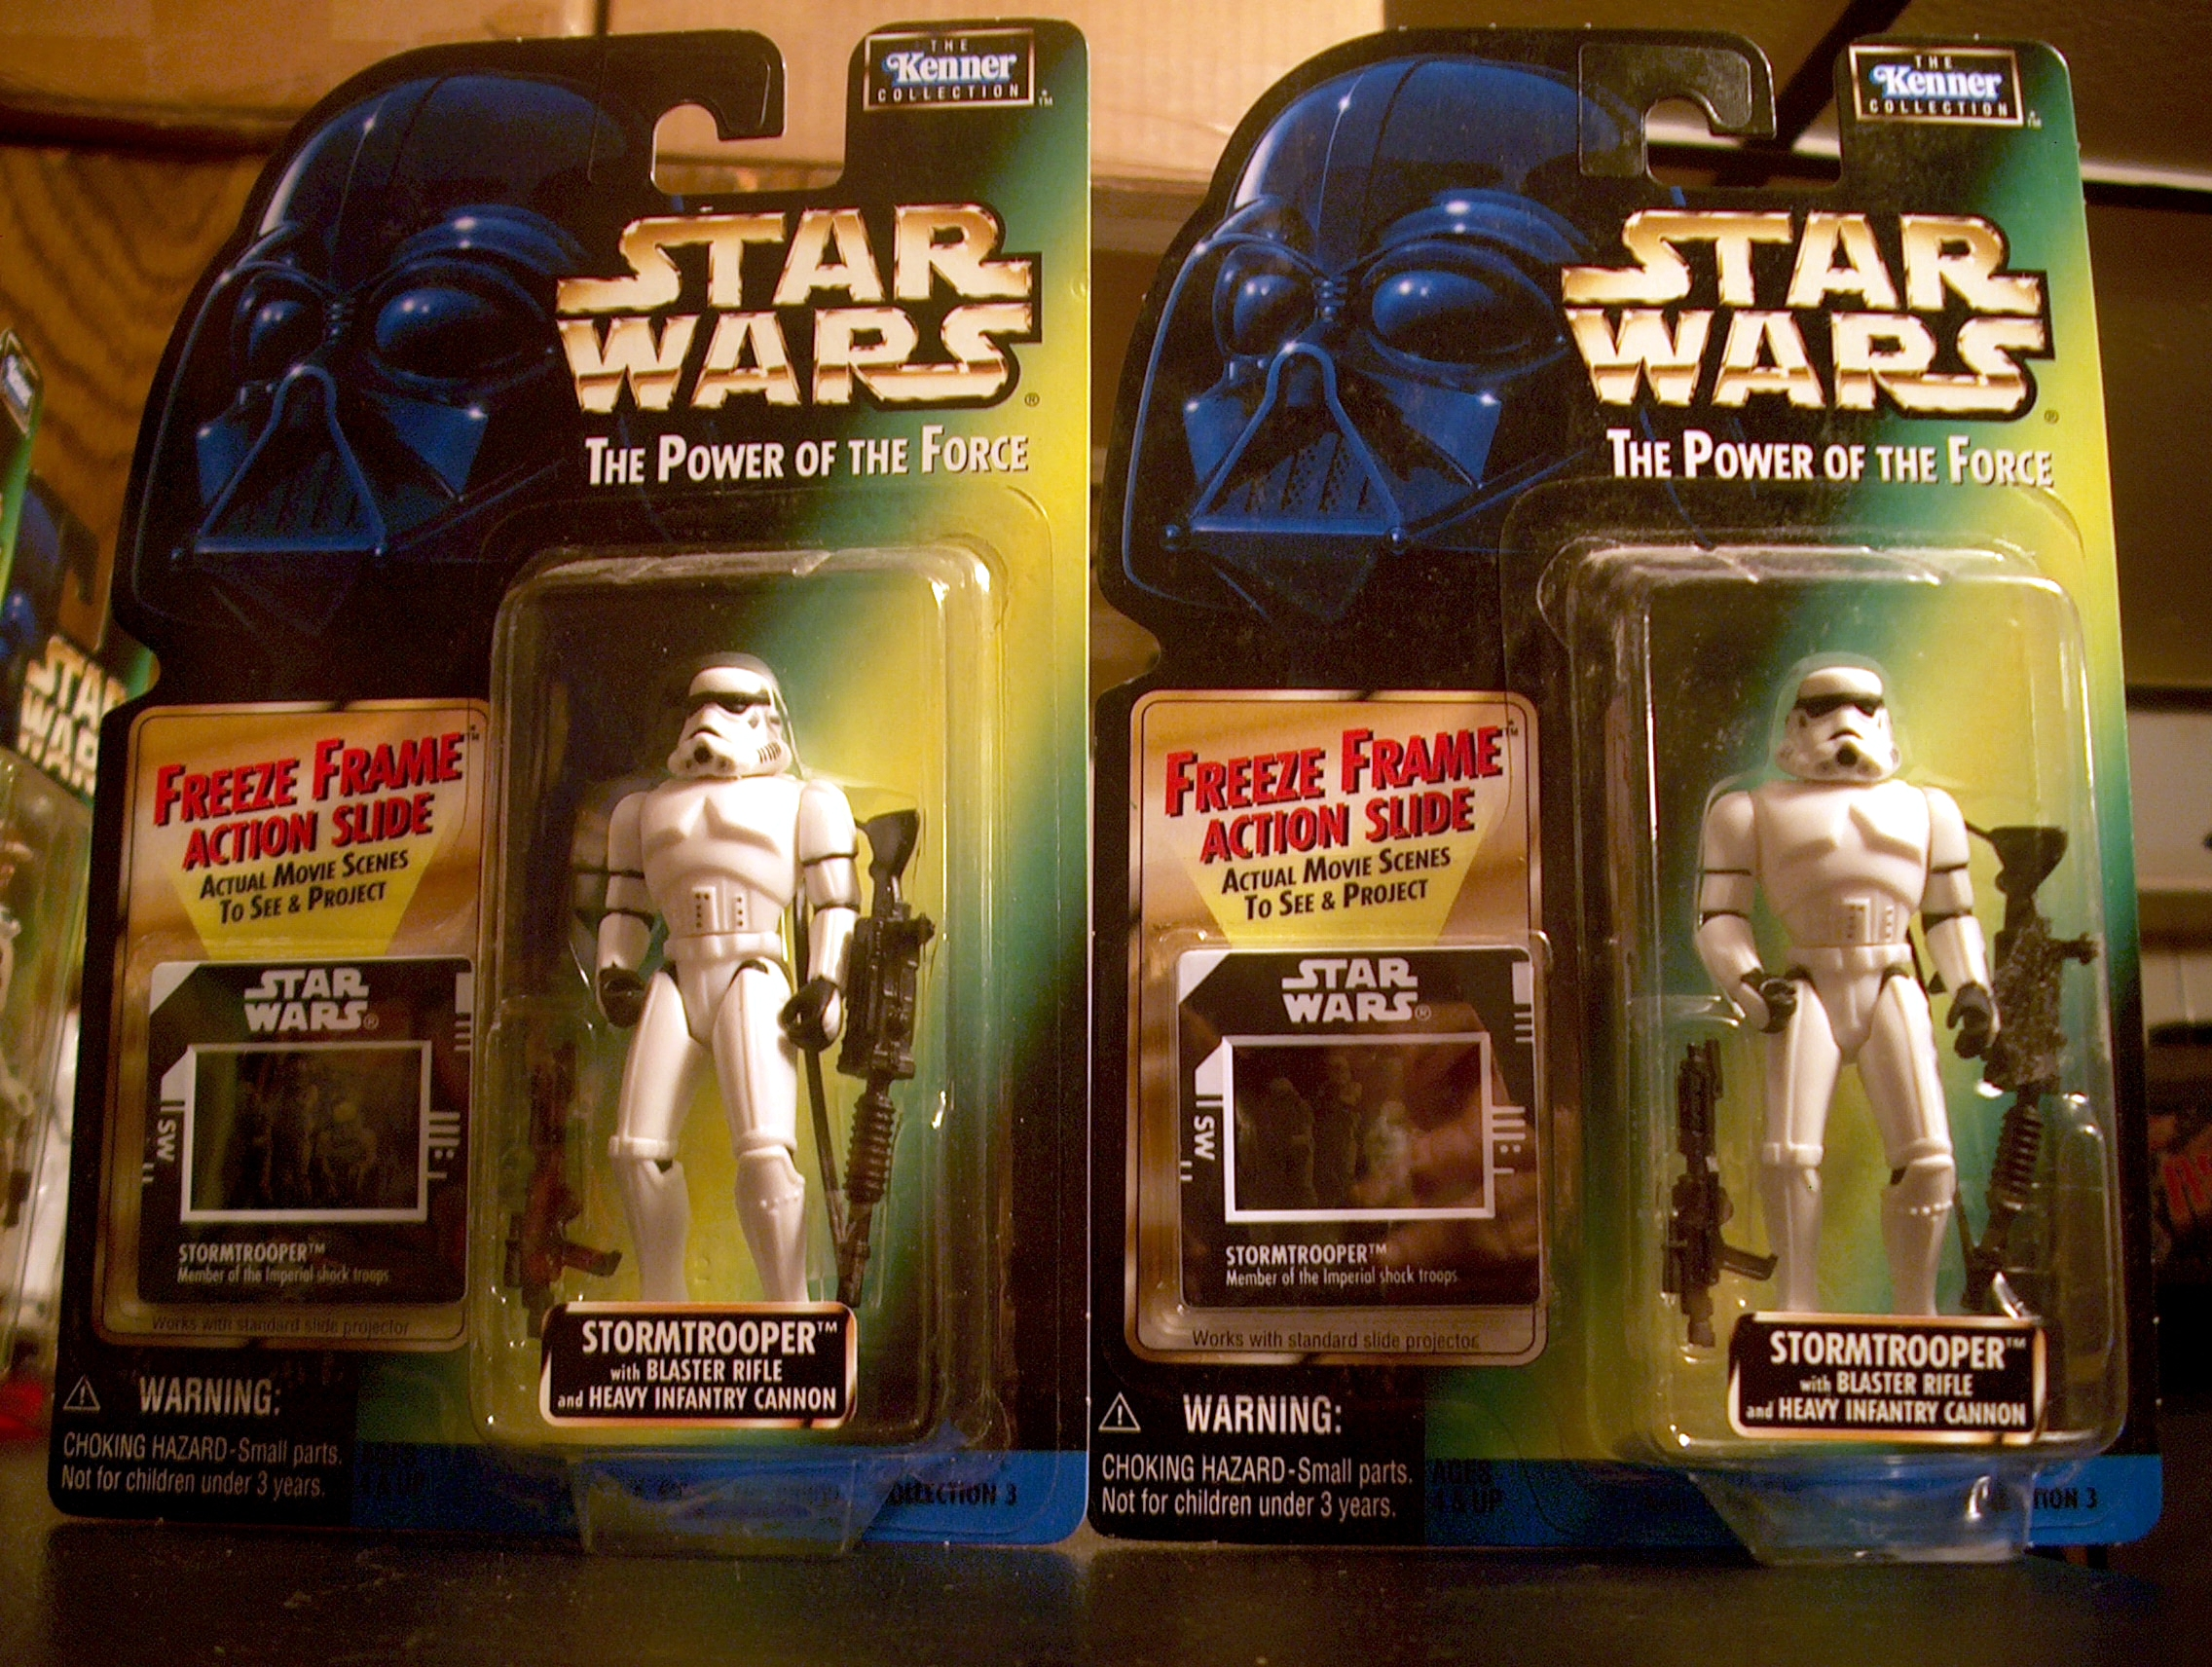 Stormtrooper with Blaster Rifle and Heavy Infantry Cannon